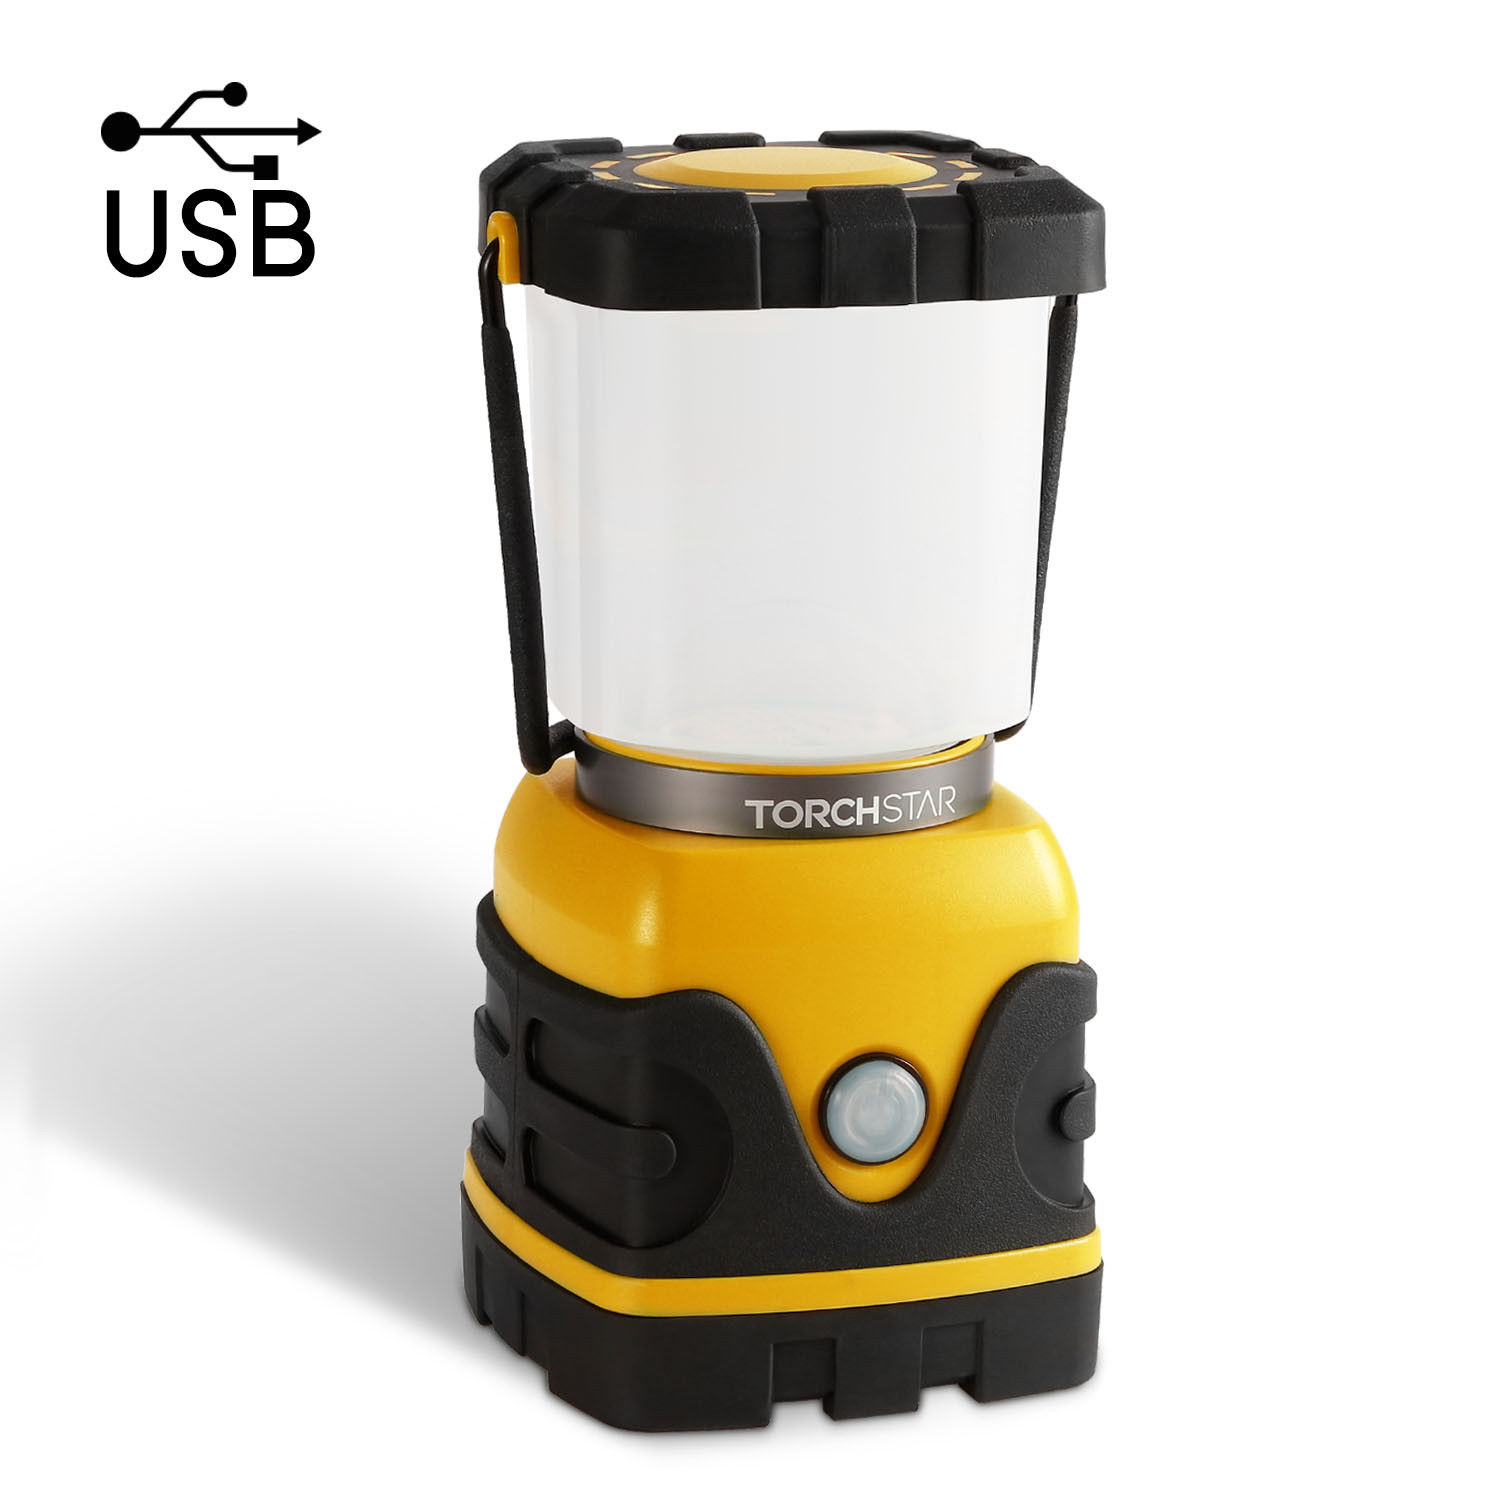 TORCHSTAR Portable LED Camping Lantern, 4-level Dimmable (300lm-1000lm) Emergency Light with 4400mAh Rechargeable Battery, Waterproof Hiking Fishing Outages Nightlight Survival Lamp, USB Port, Yellow